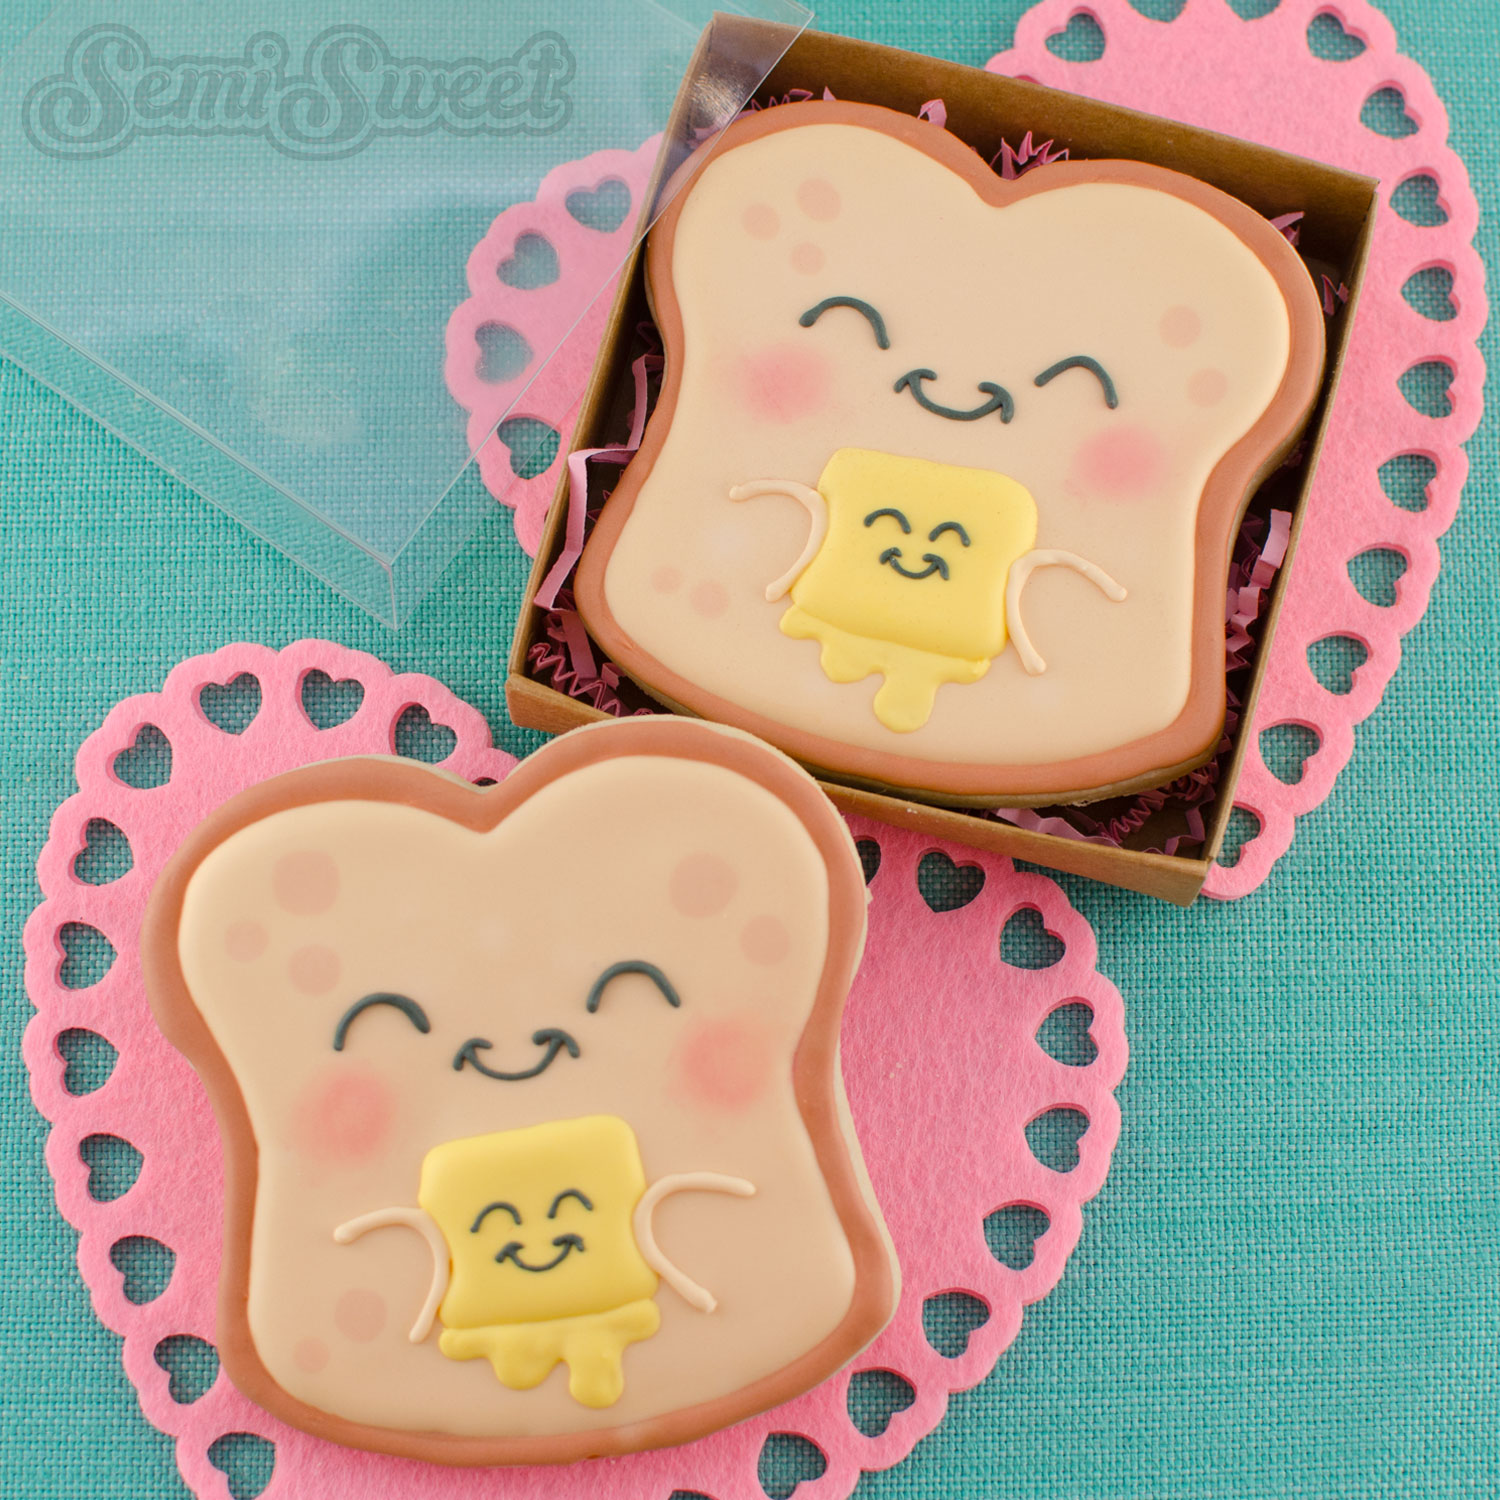 How to Make Bread & Butter Valentine Cookies